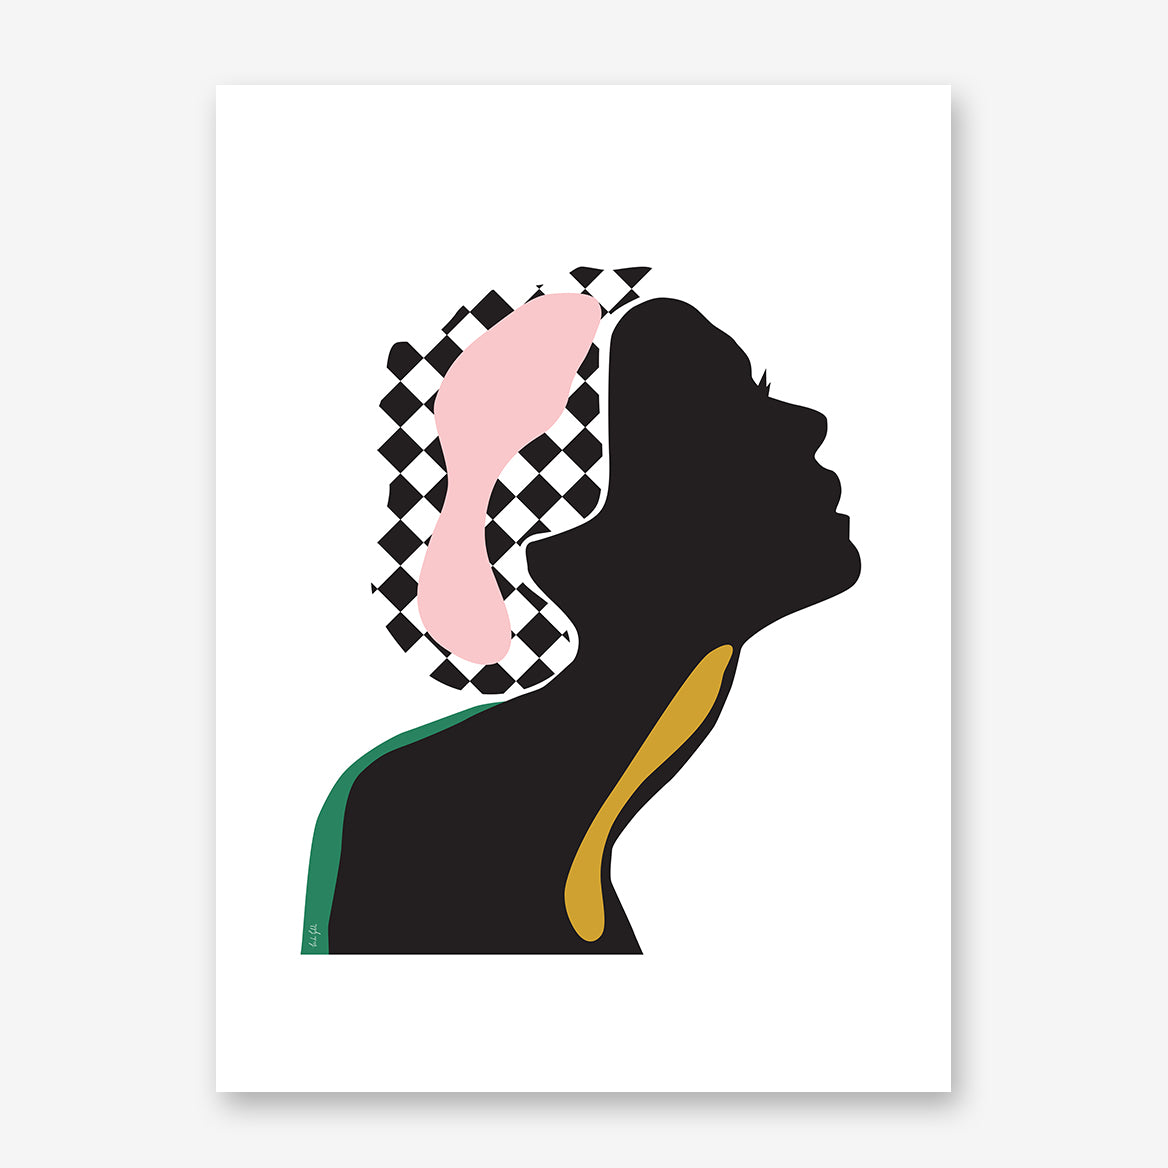 Fashion poster print by Linda Gobeta, with an abstract woman's silhouette, on white background.